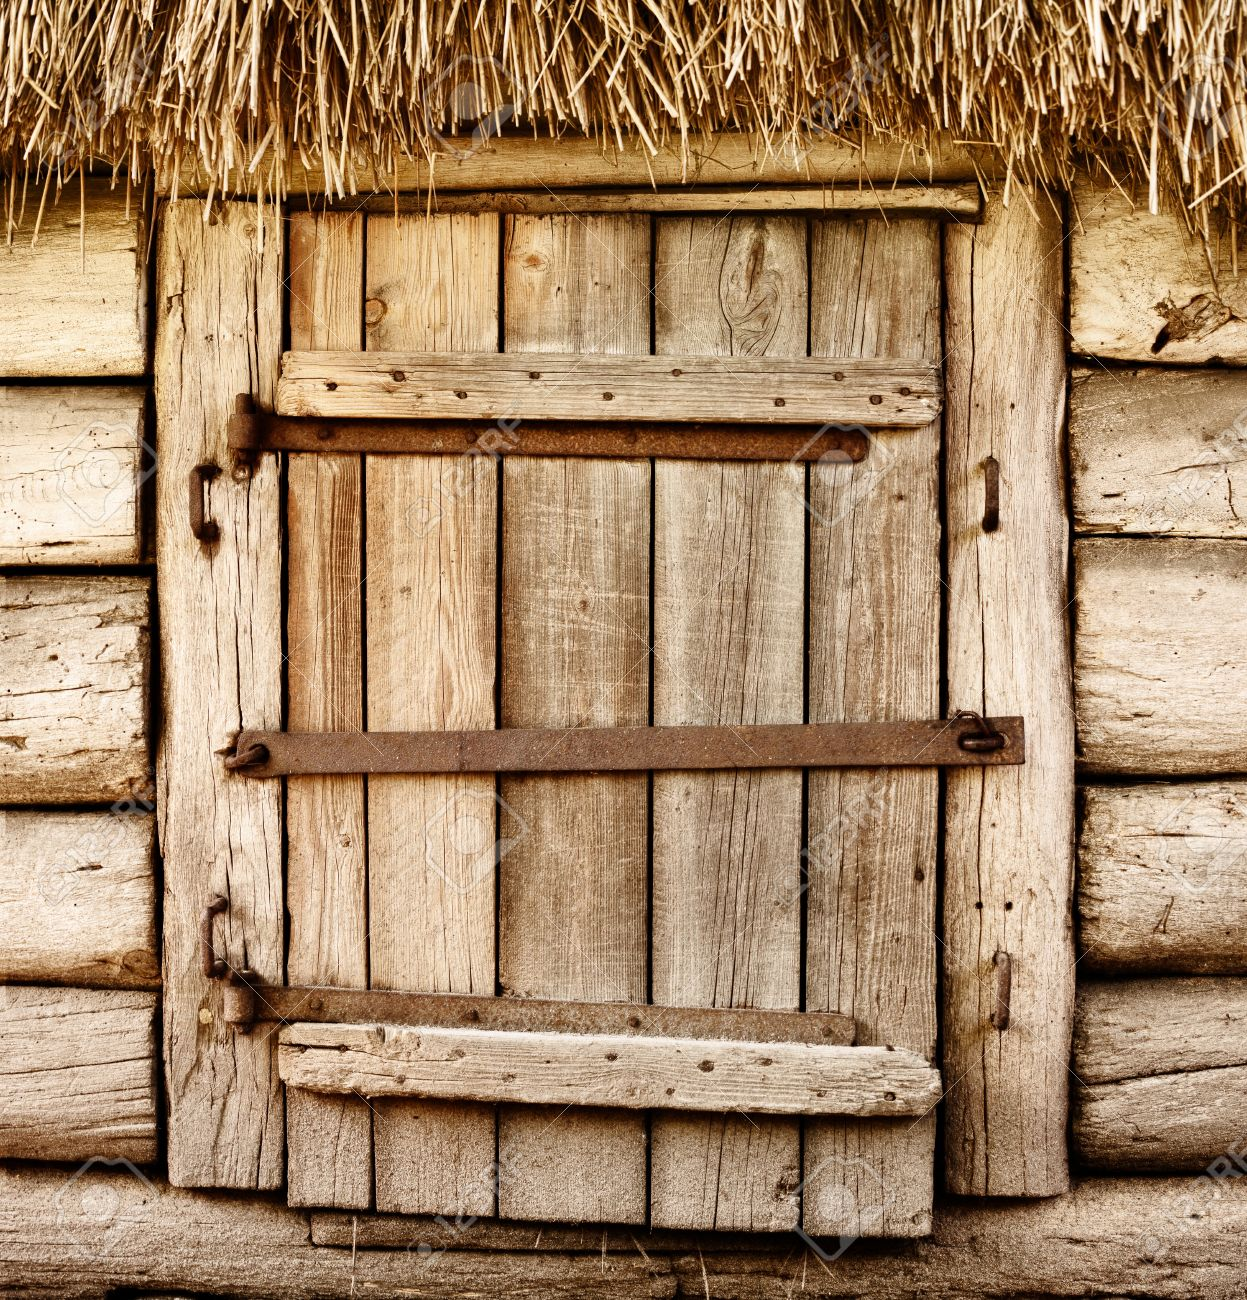 Stock Photo - Wooden door of old rustic cabin & Wooden Door Of Old Rustic Cabin Stock Photo Picture And Royalty ...